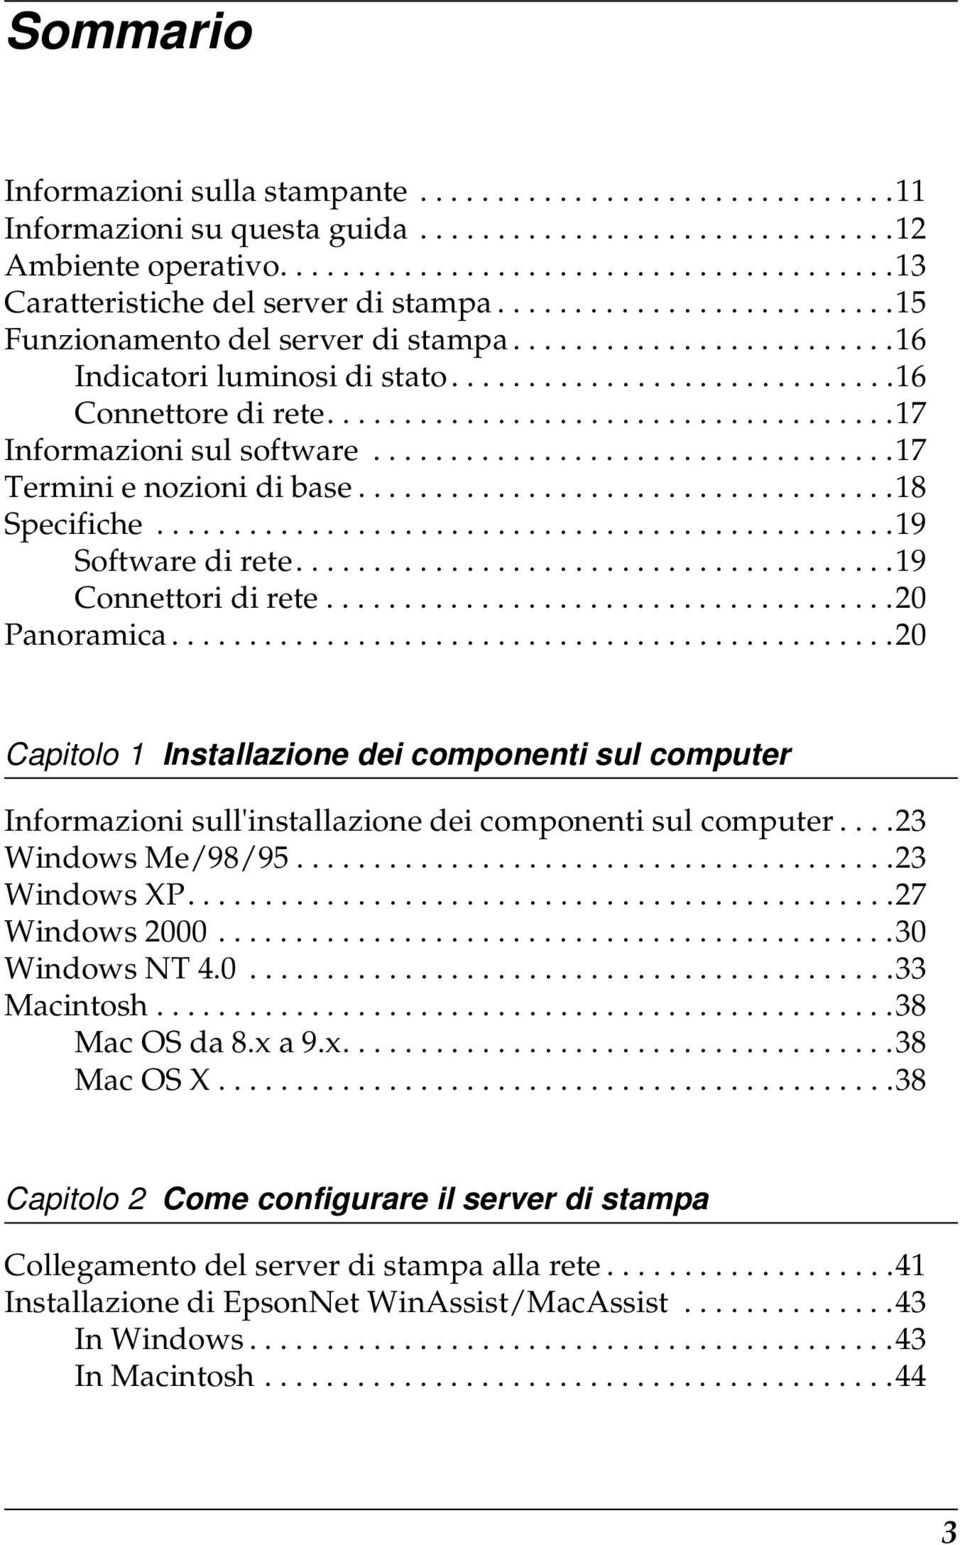 .................................17 Termini e nozioni di base...................................18 Specifiche................................................19 Software di rete.......................................19 Connettori di rete.